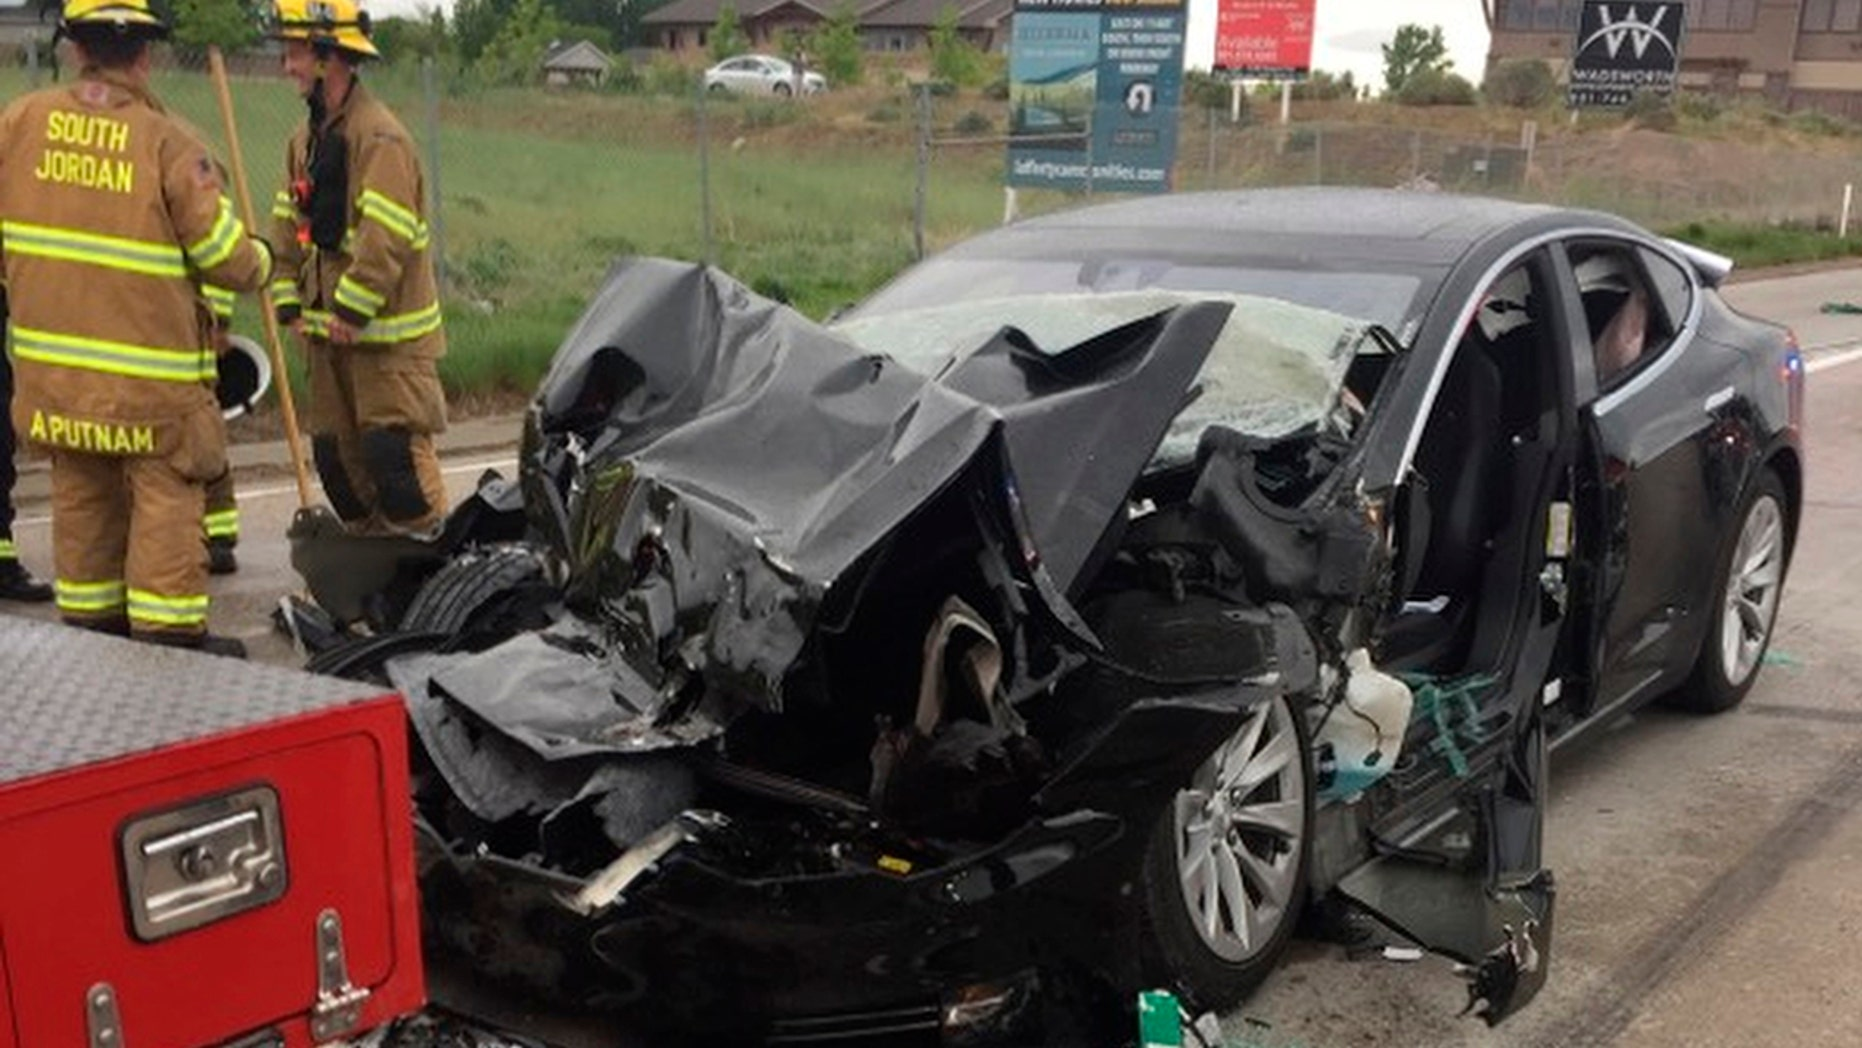 FILE -In this Friday, May 11, 2018, file photo released by the South Jordan Police Department shows a traffic collision involving a Tesla Model S sedan with a Fire Department mechanic truck stopped at a red light in South Jordan, Utah. The driver of a Tesla electric car that hit a Utah fire department vehicle over the weekend says the car's semi-autonomous Autopilot mode was engaged at the time of the crash. Police in the Salt Lake City suburb of South Jordan said Monday, May 14, 2018, the driver also said in an interview that she was looking at her phone before the accident. The 28-year-old woman broke her foot when her car hit a fire truck stopped at a red light while going 60 mph (97 kph). (South Jordan Police Department via AP, File)